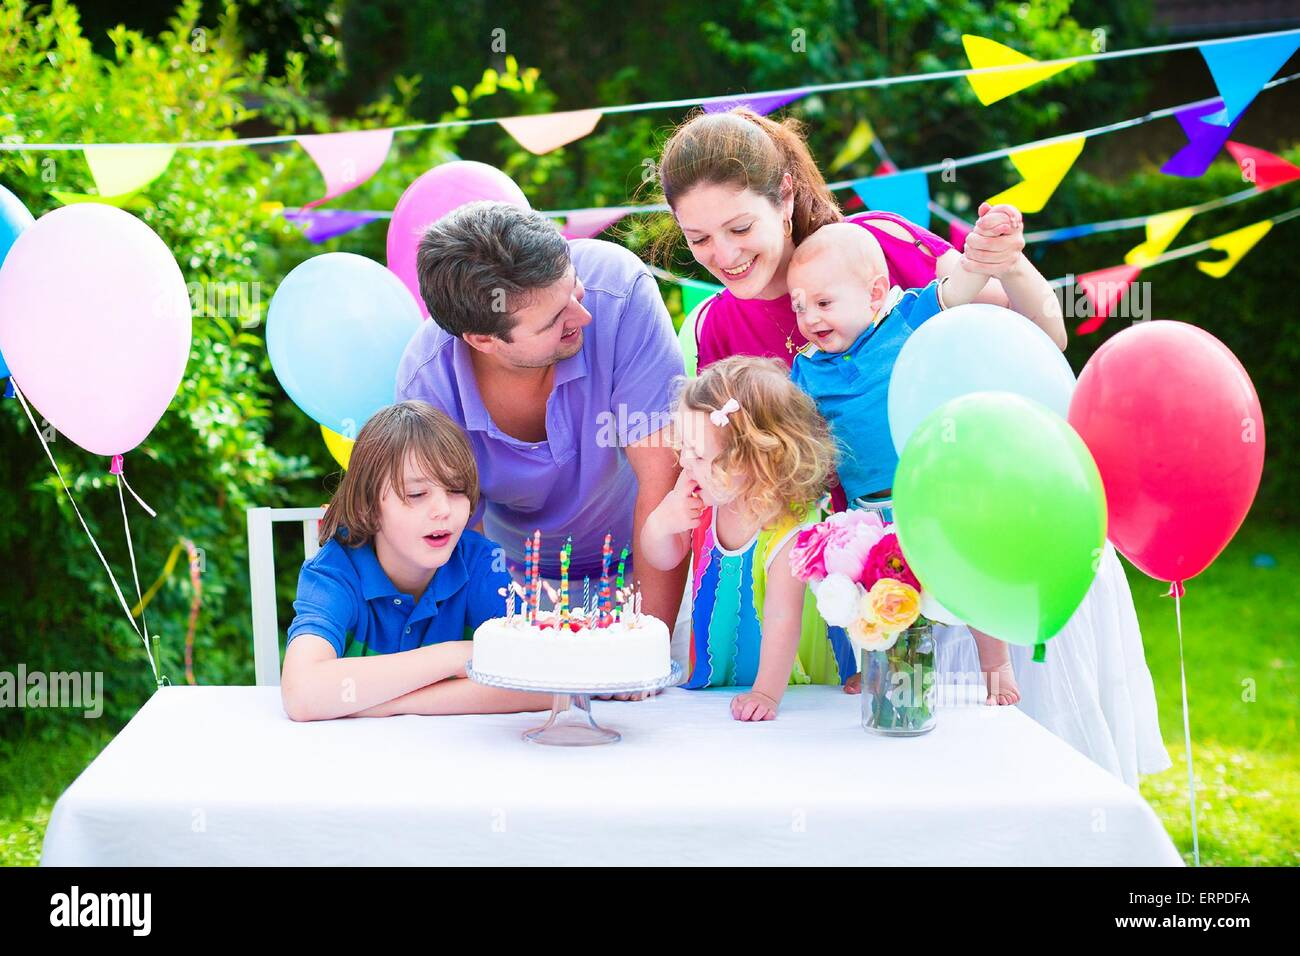 Happy big family with three kids enjoying birthday party with cake blowing candles in garden decorated with balloons - Stock Image